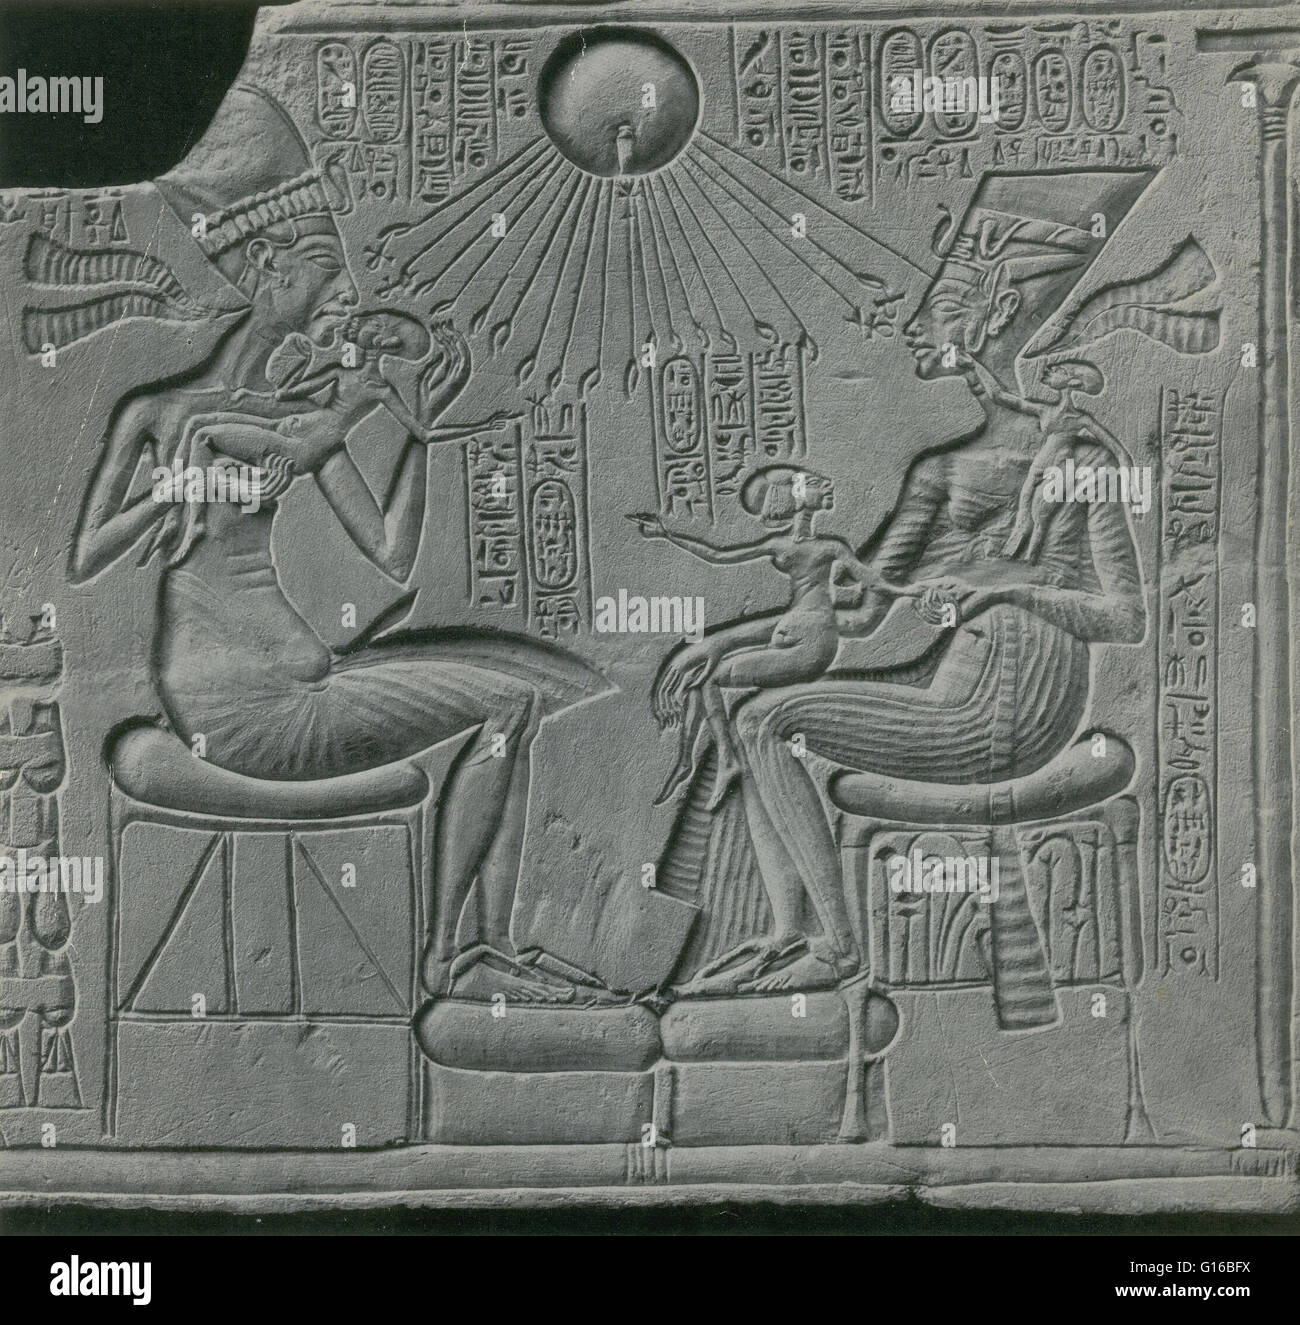 Caption: 'Sunk-relief depicting Egyptian pharaoh Akhenaton, his wife Nefertiti, and three of their daughters, - Stock Image